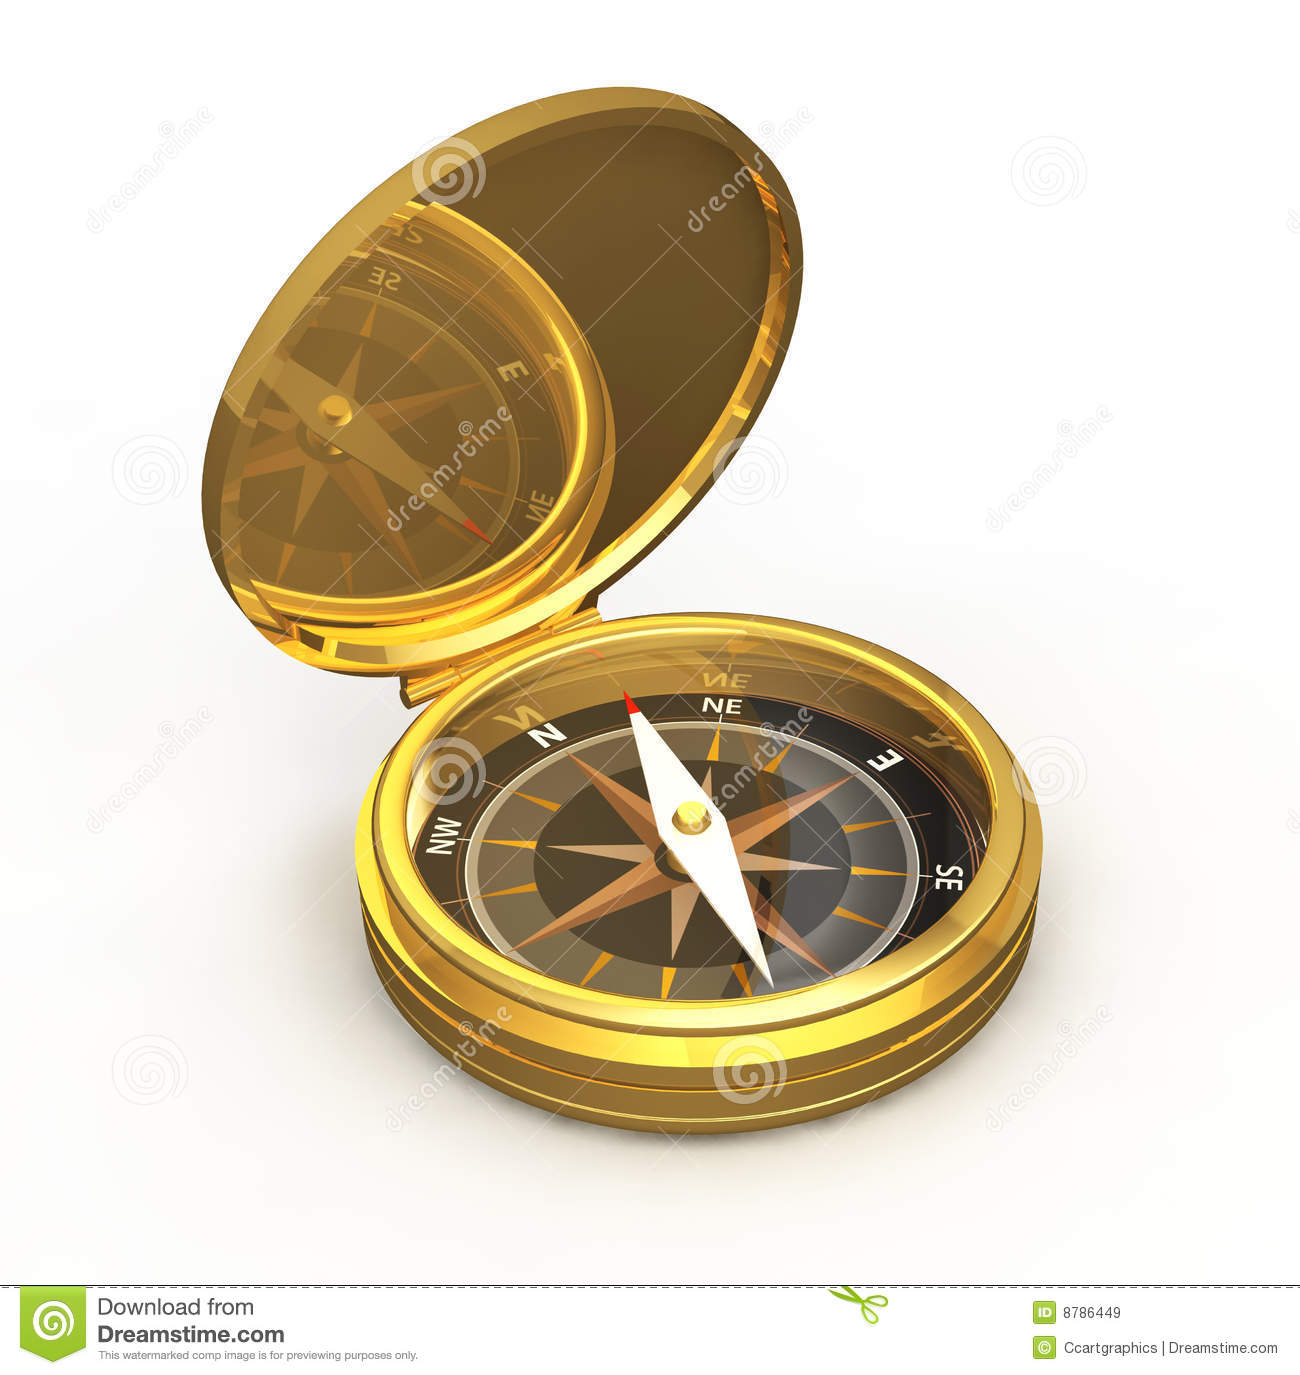 Compass Gold Royalty Free Stock Images - Image: 8786449: dreamstime.com/royalty-free-stock-images-compass-gold-image8786449